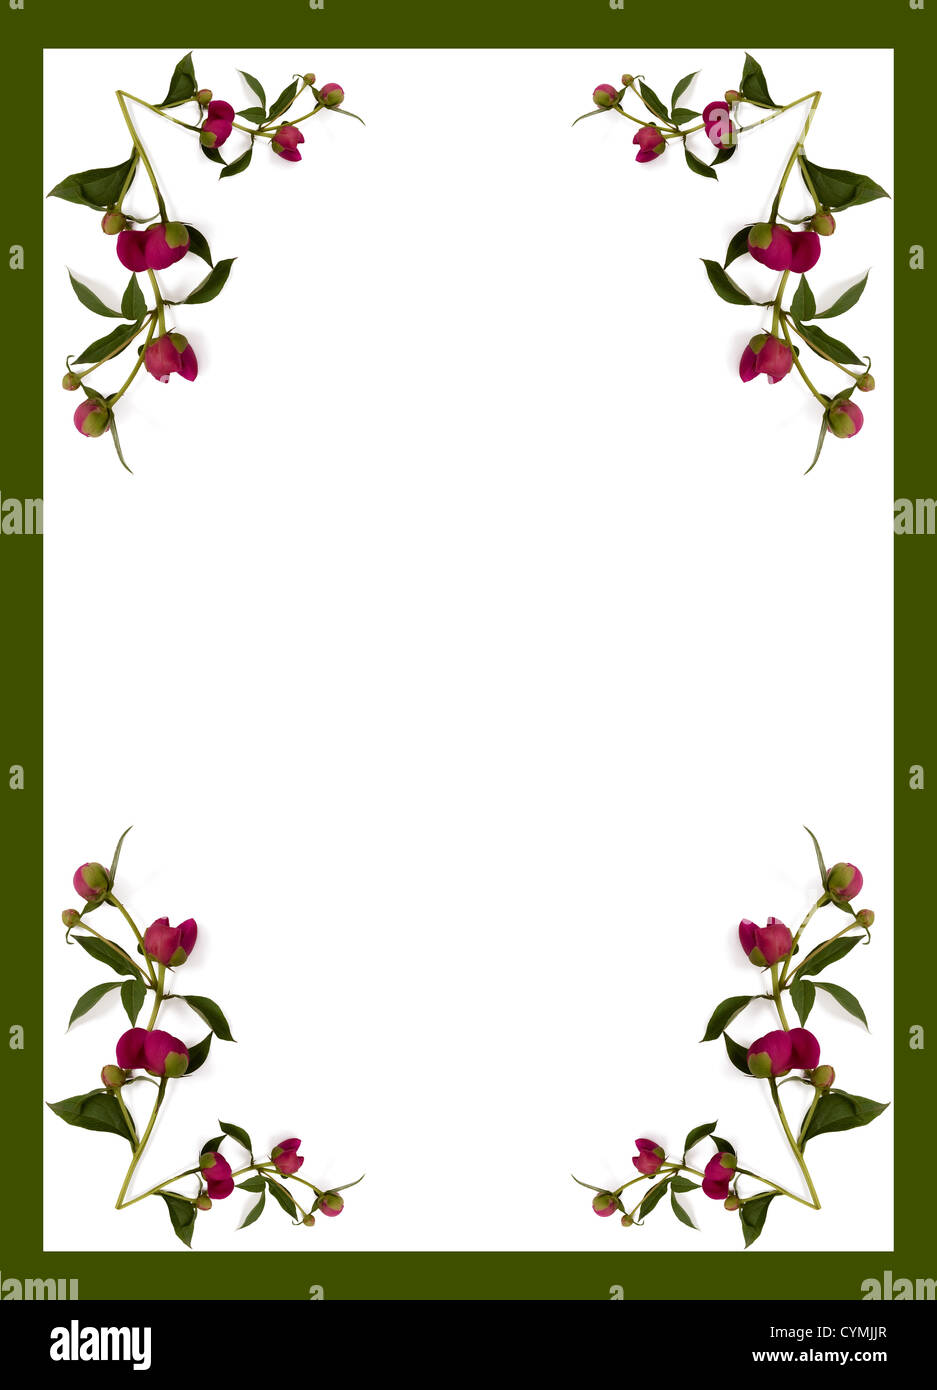 Paeonia red buds arrangement on white print - Stock Image